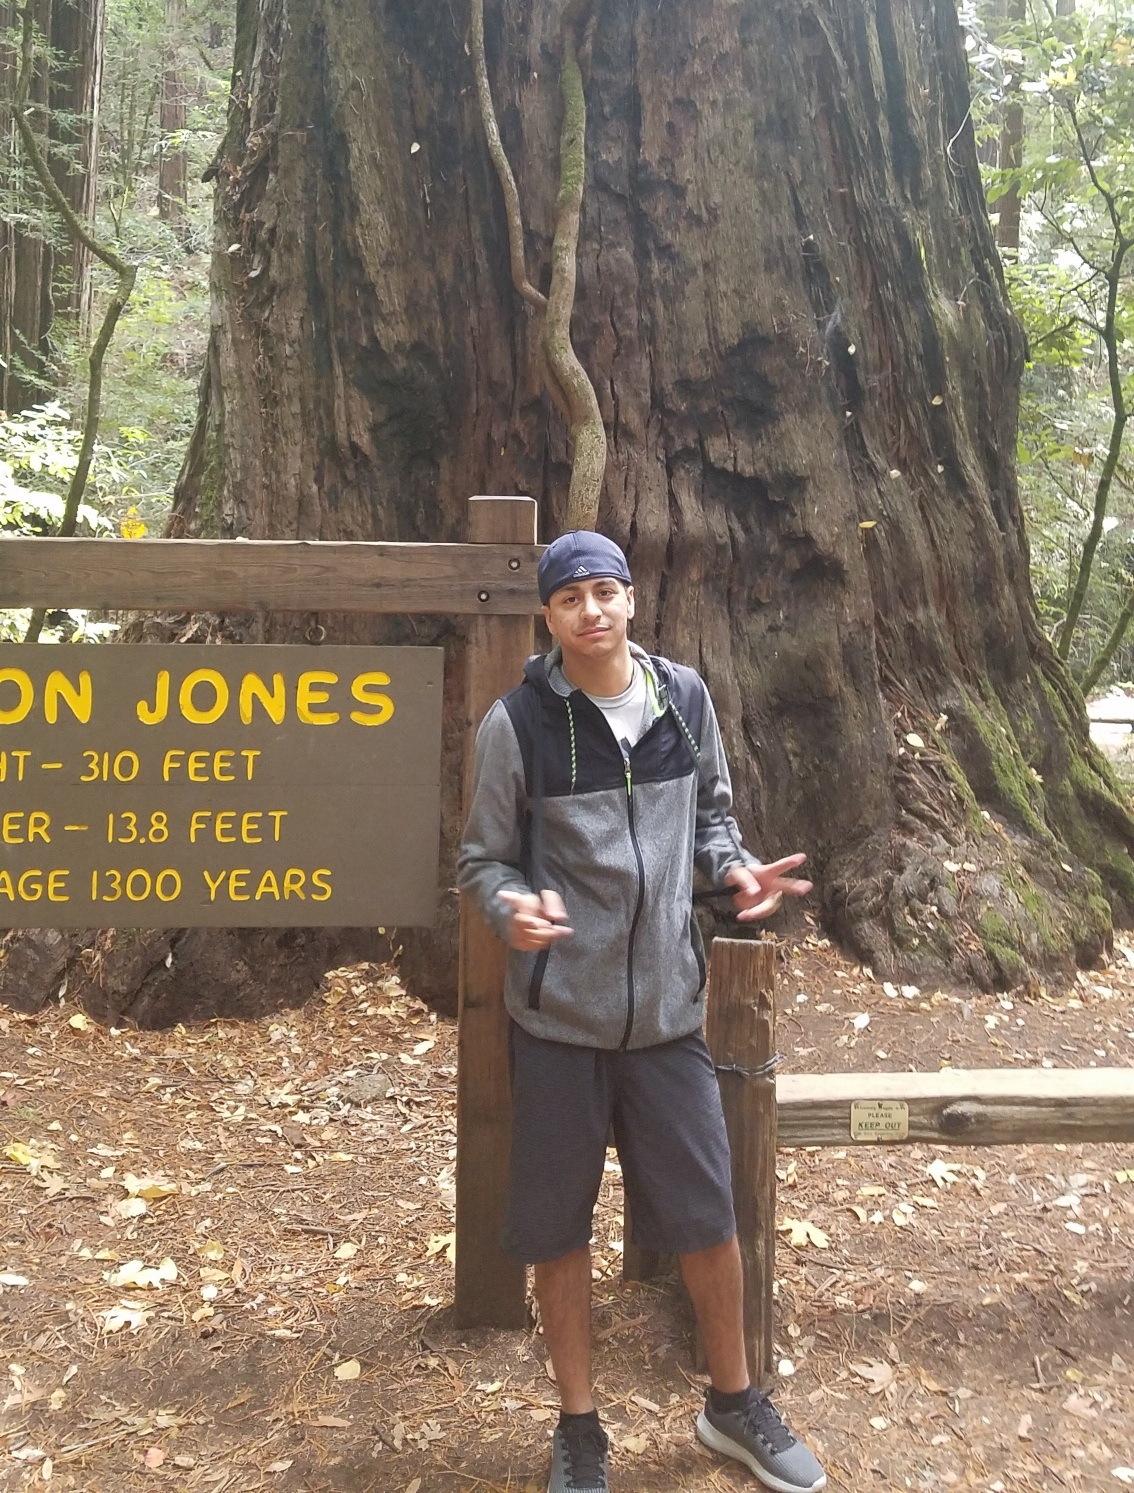 Edward Gutierrez standing in front of Parson Jones, the tallest tree in the Armstrong Redwood Natural Reserve in California | October 2018